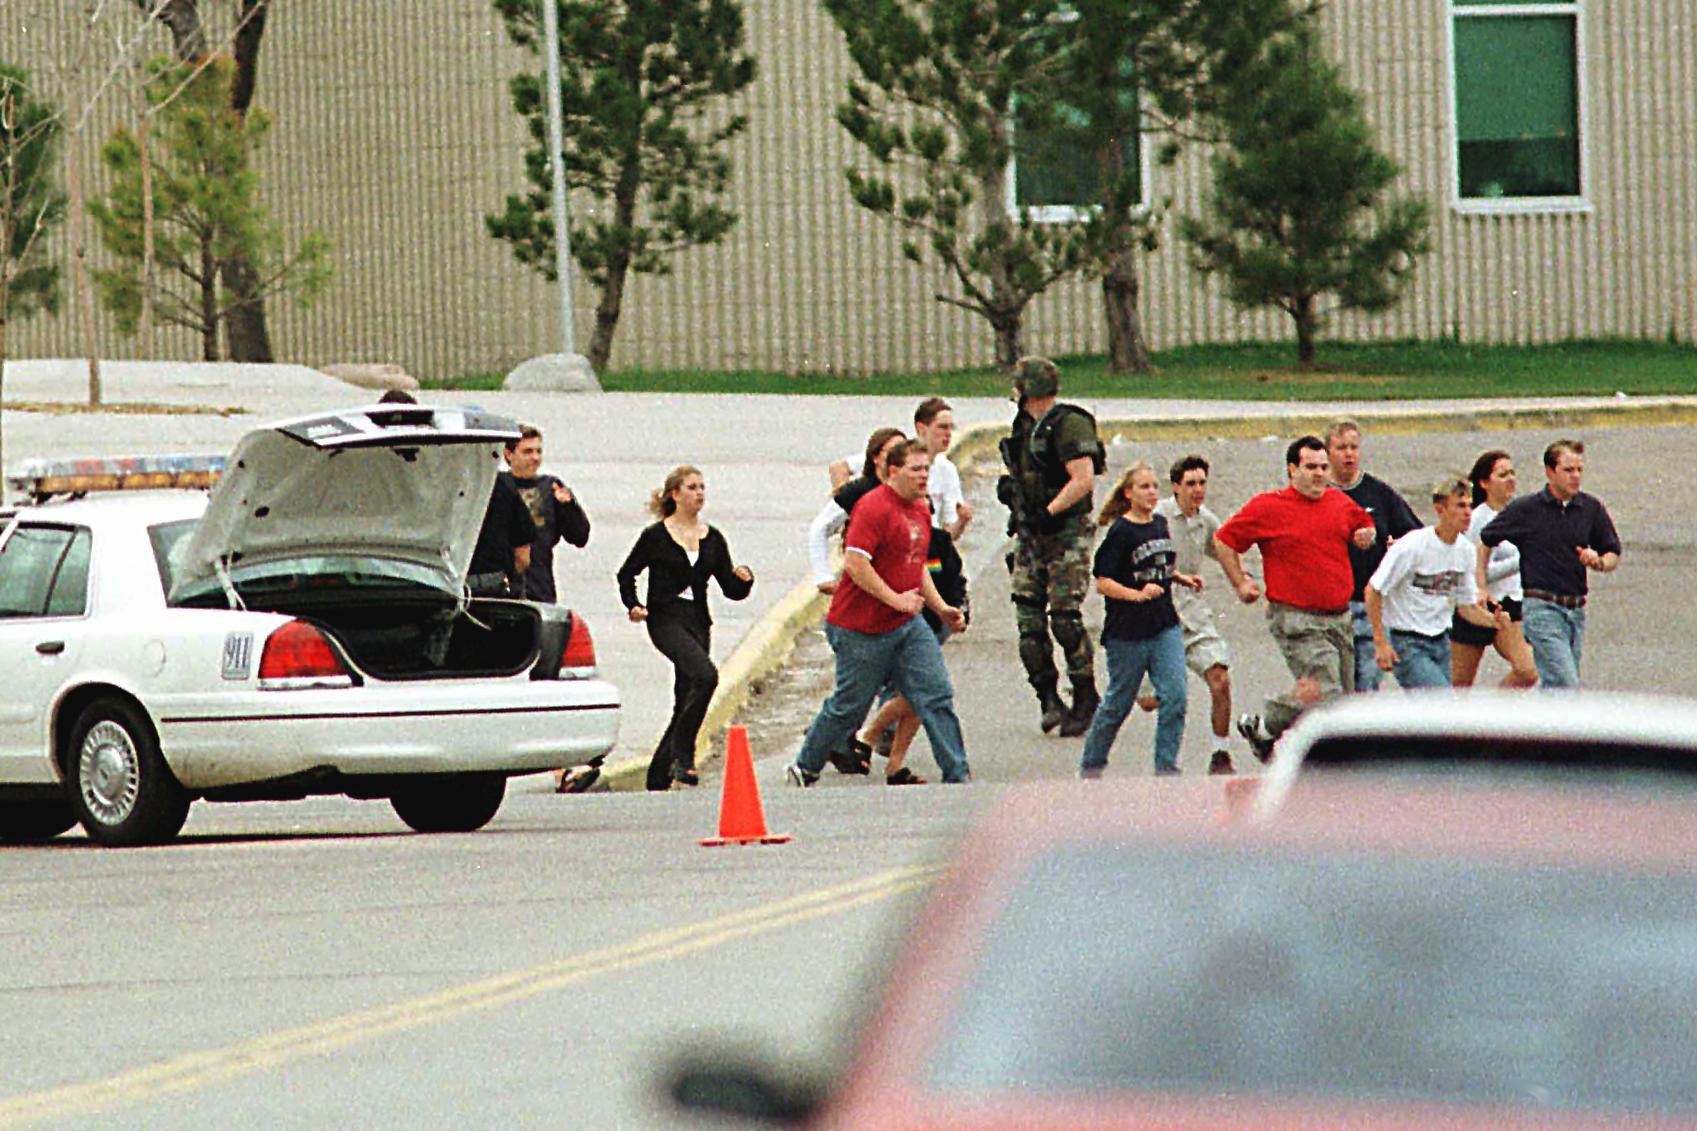 Students run from Columbine High School under cover from police.